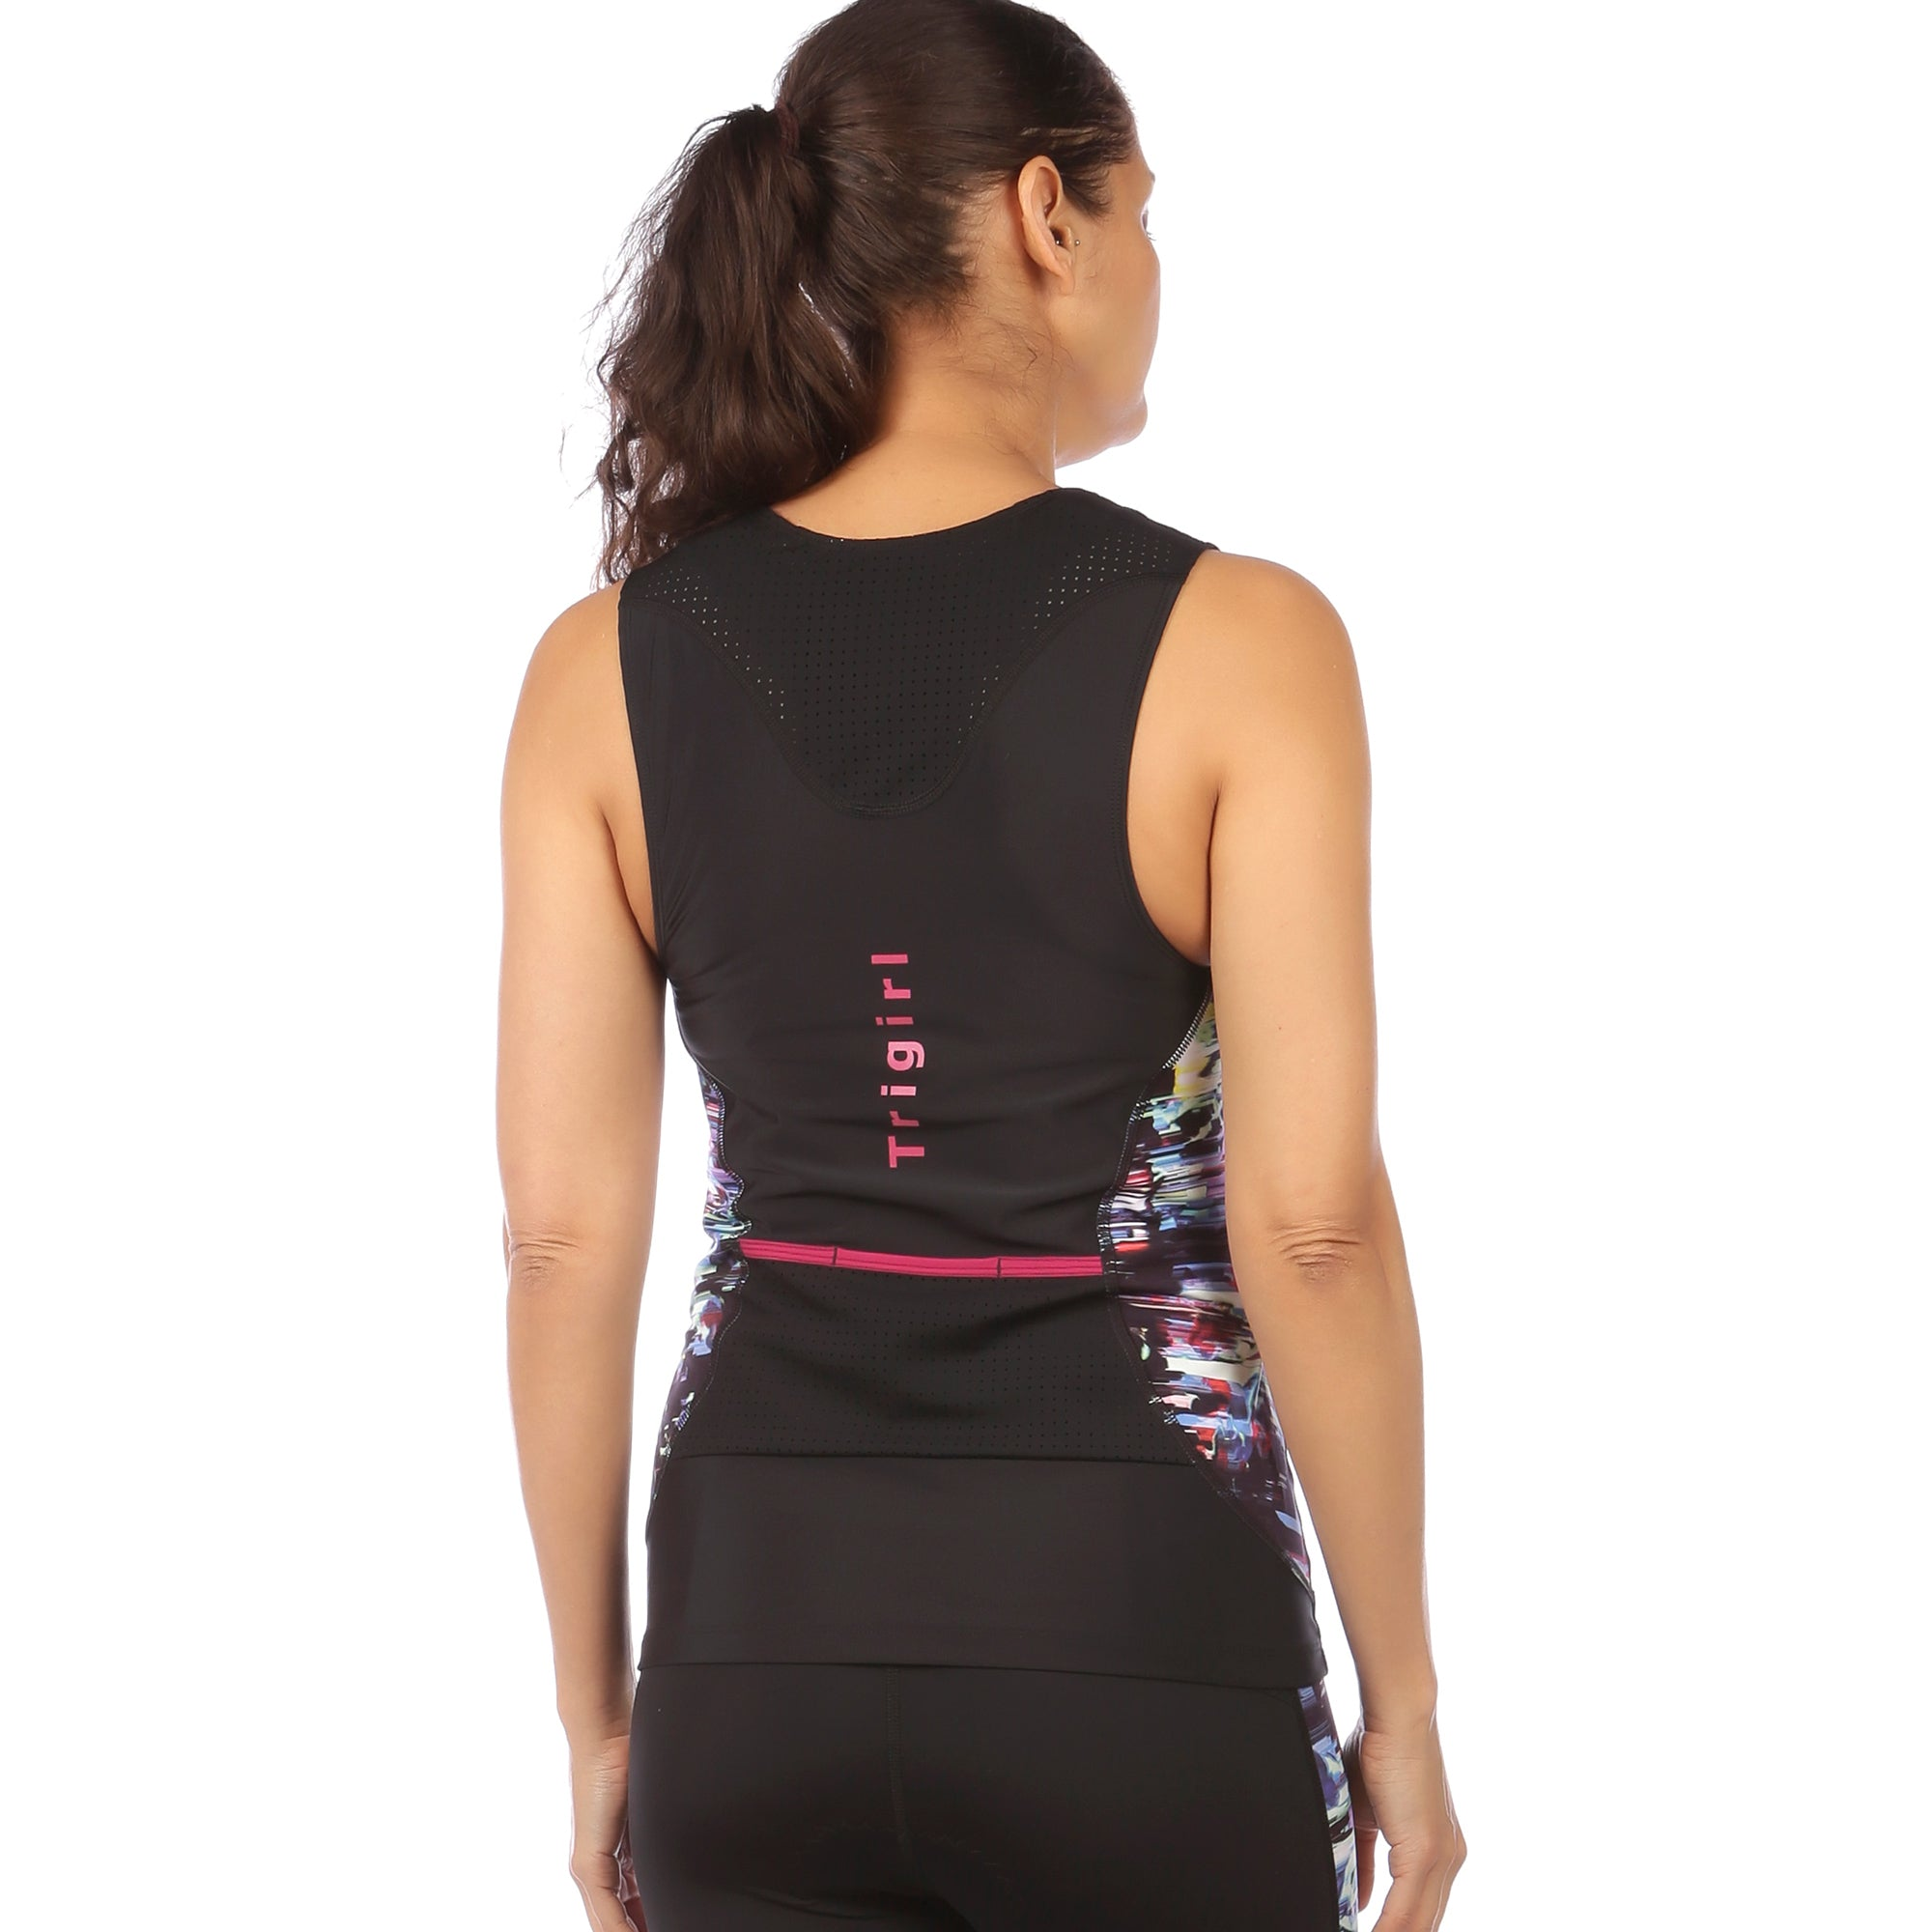 Sassy C/D Triathlon Top with Support Bra, Glitched Floral